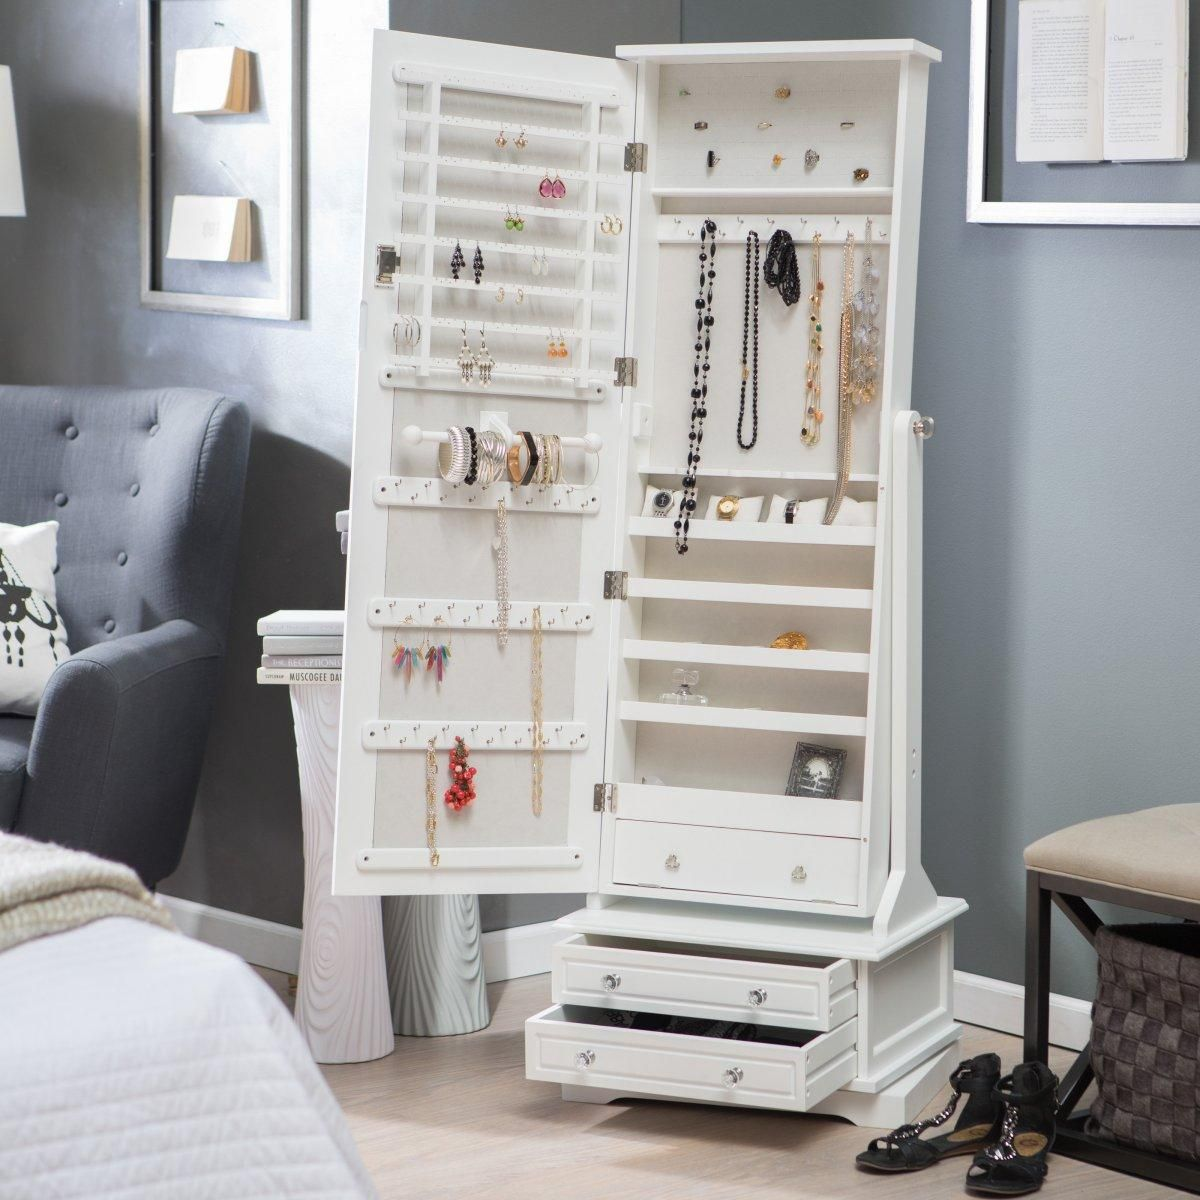 Etonnant Locking Jewelry Armoire And Adjustable Full Length Mirror Combined.